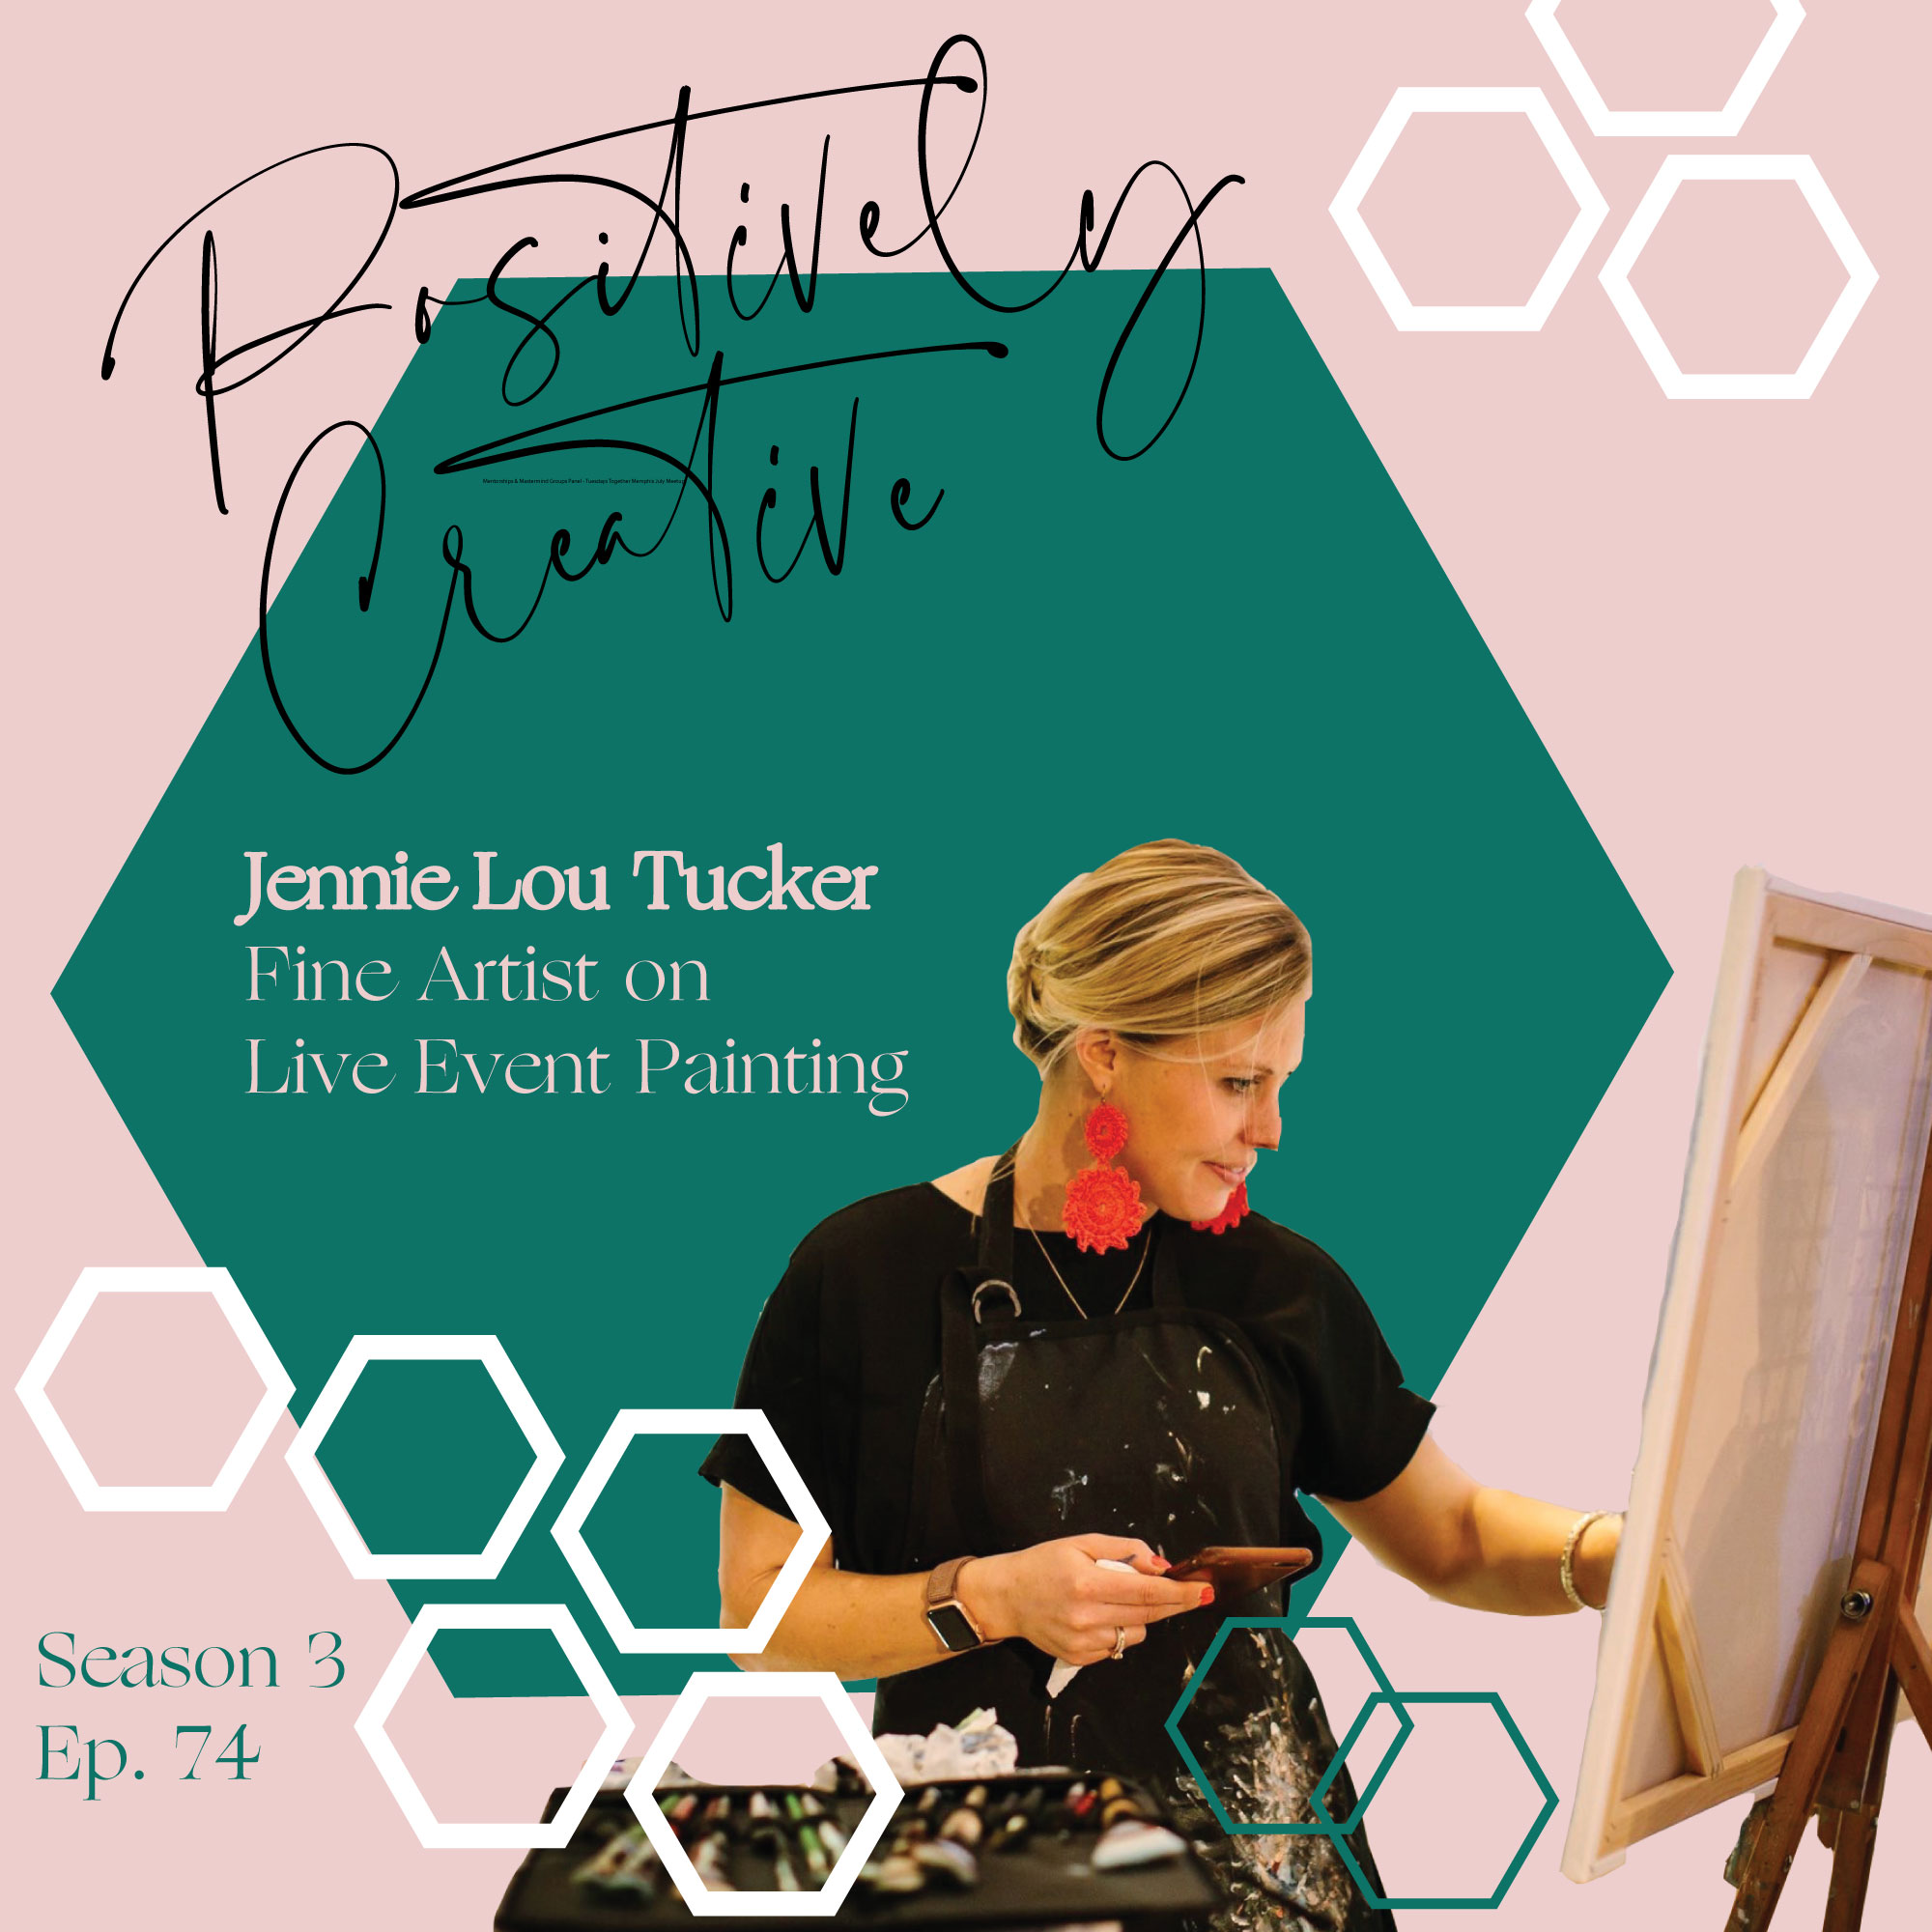 S3-Ep-74-Jennie-Lou-Tucker,-Fine-Artist-on-Live-Event-Painting.jpg